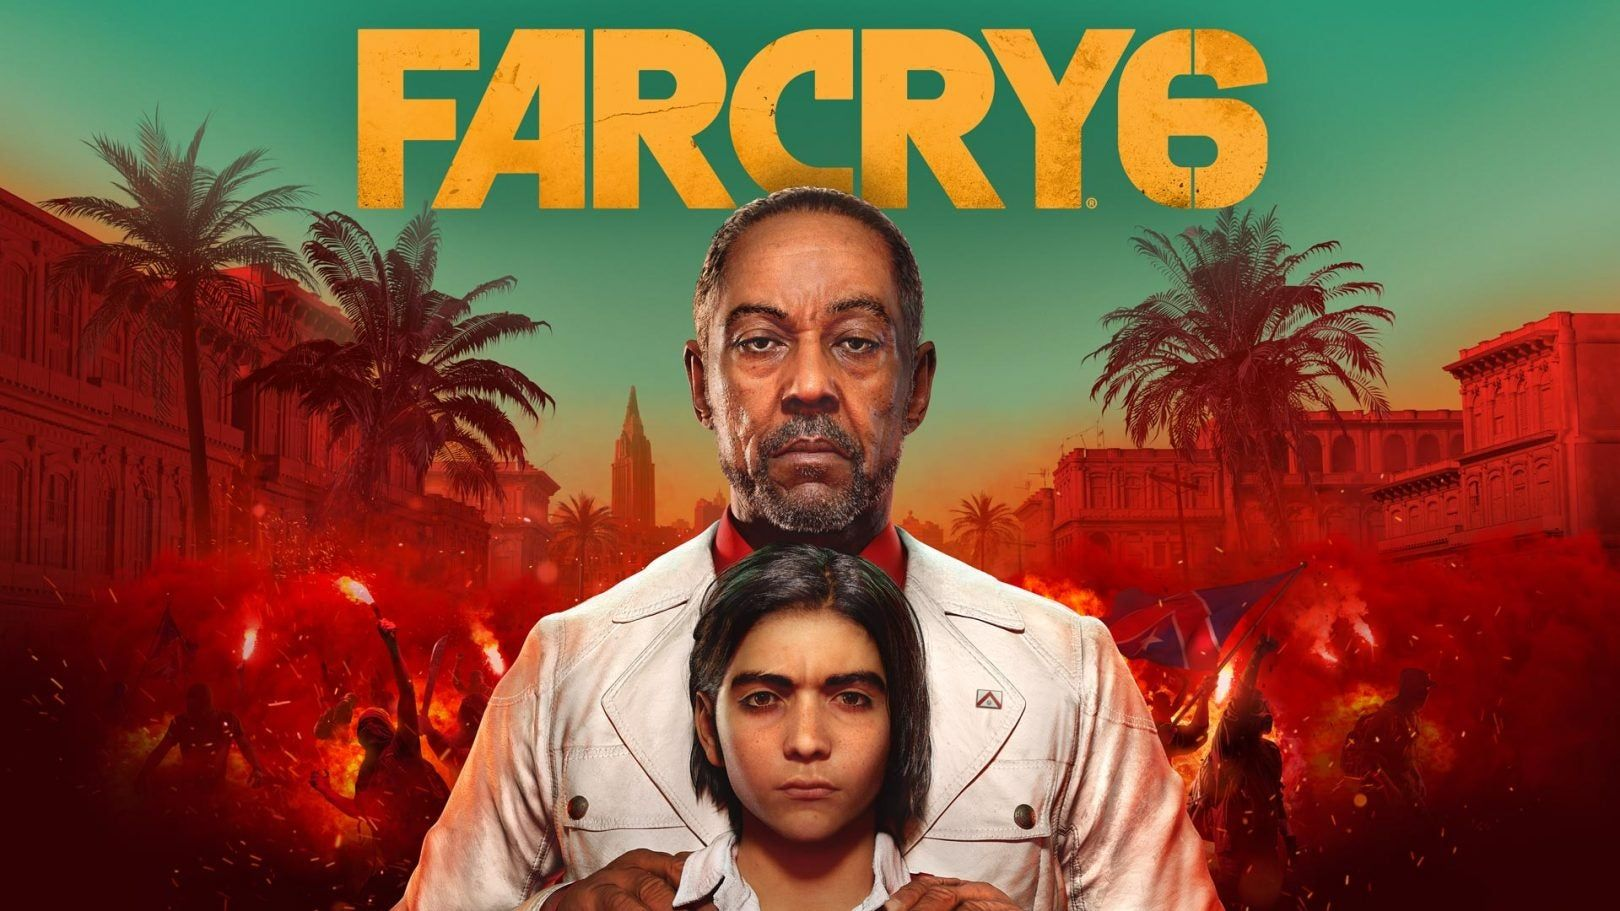 The logo for FAR CRY 6 at the top of the image. The main protagonist and his father standing in the middle. People are rioting behind them with a red hue.